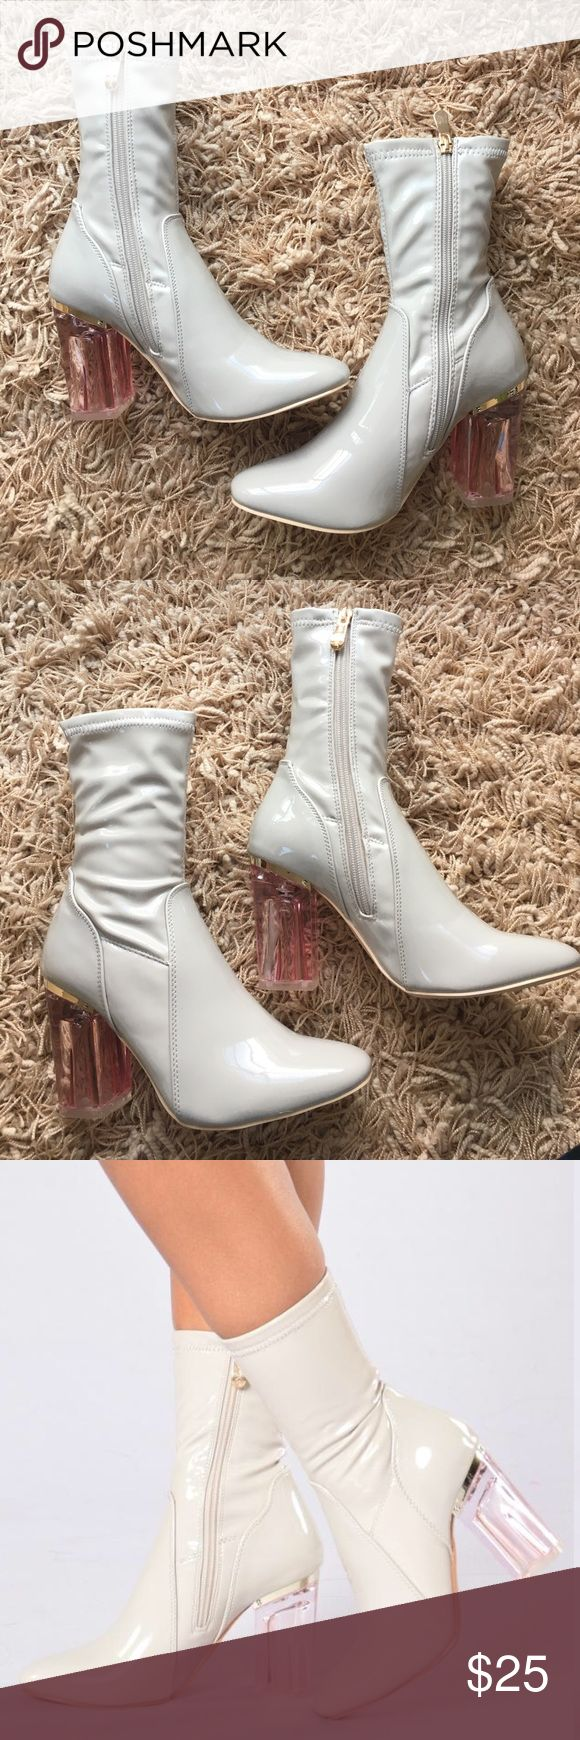 Brand New Patent Heeled Boots ✨✨ grey patent heeled boots! very cute and comfy. size 7. true to size. from online store fashion nova, do not fit me. never worn before. brand NEW with zero flaws! Fashion Nova Shoes Heeled Boots